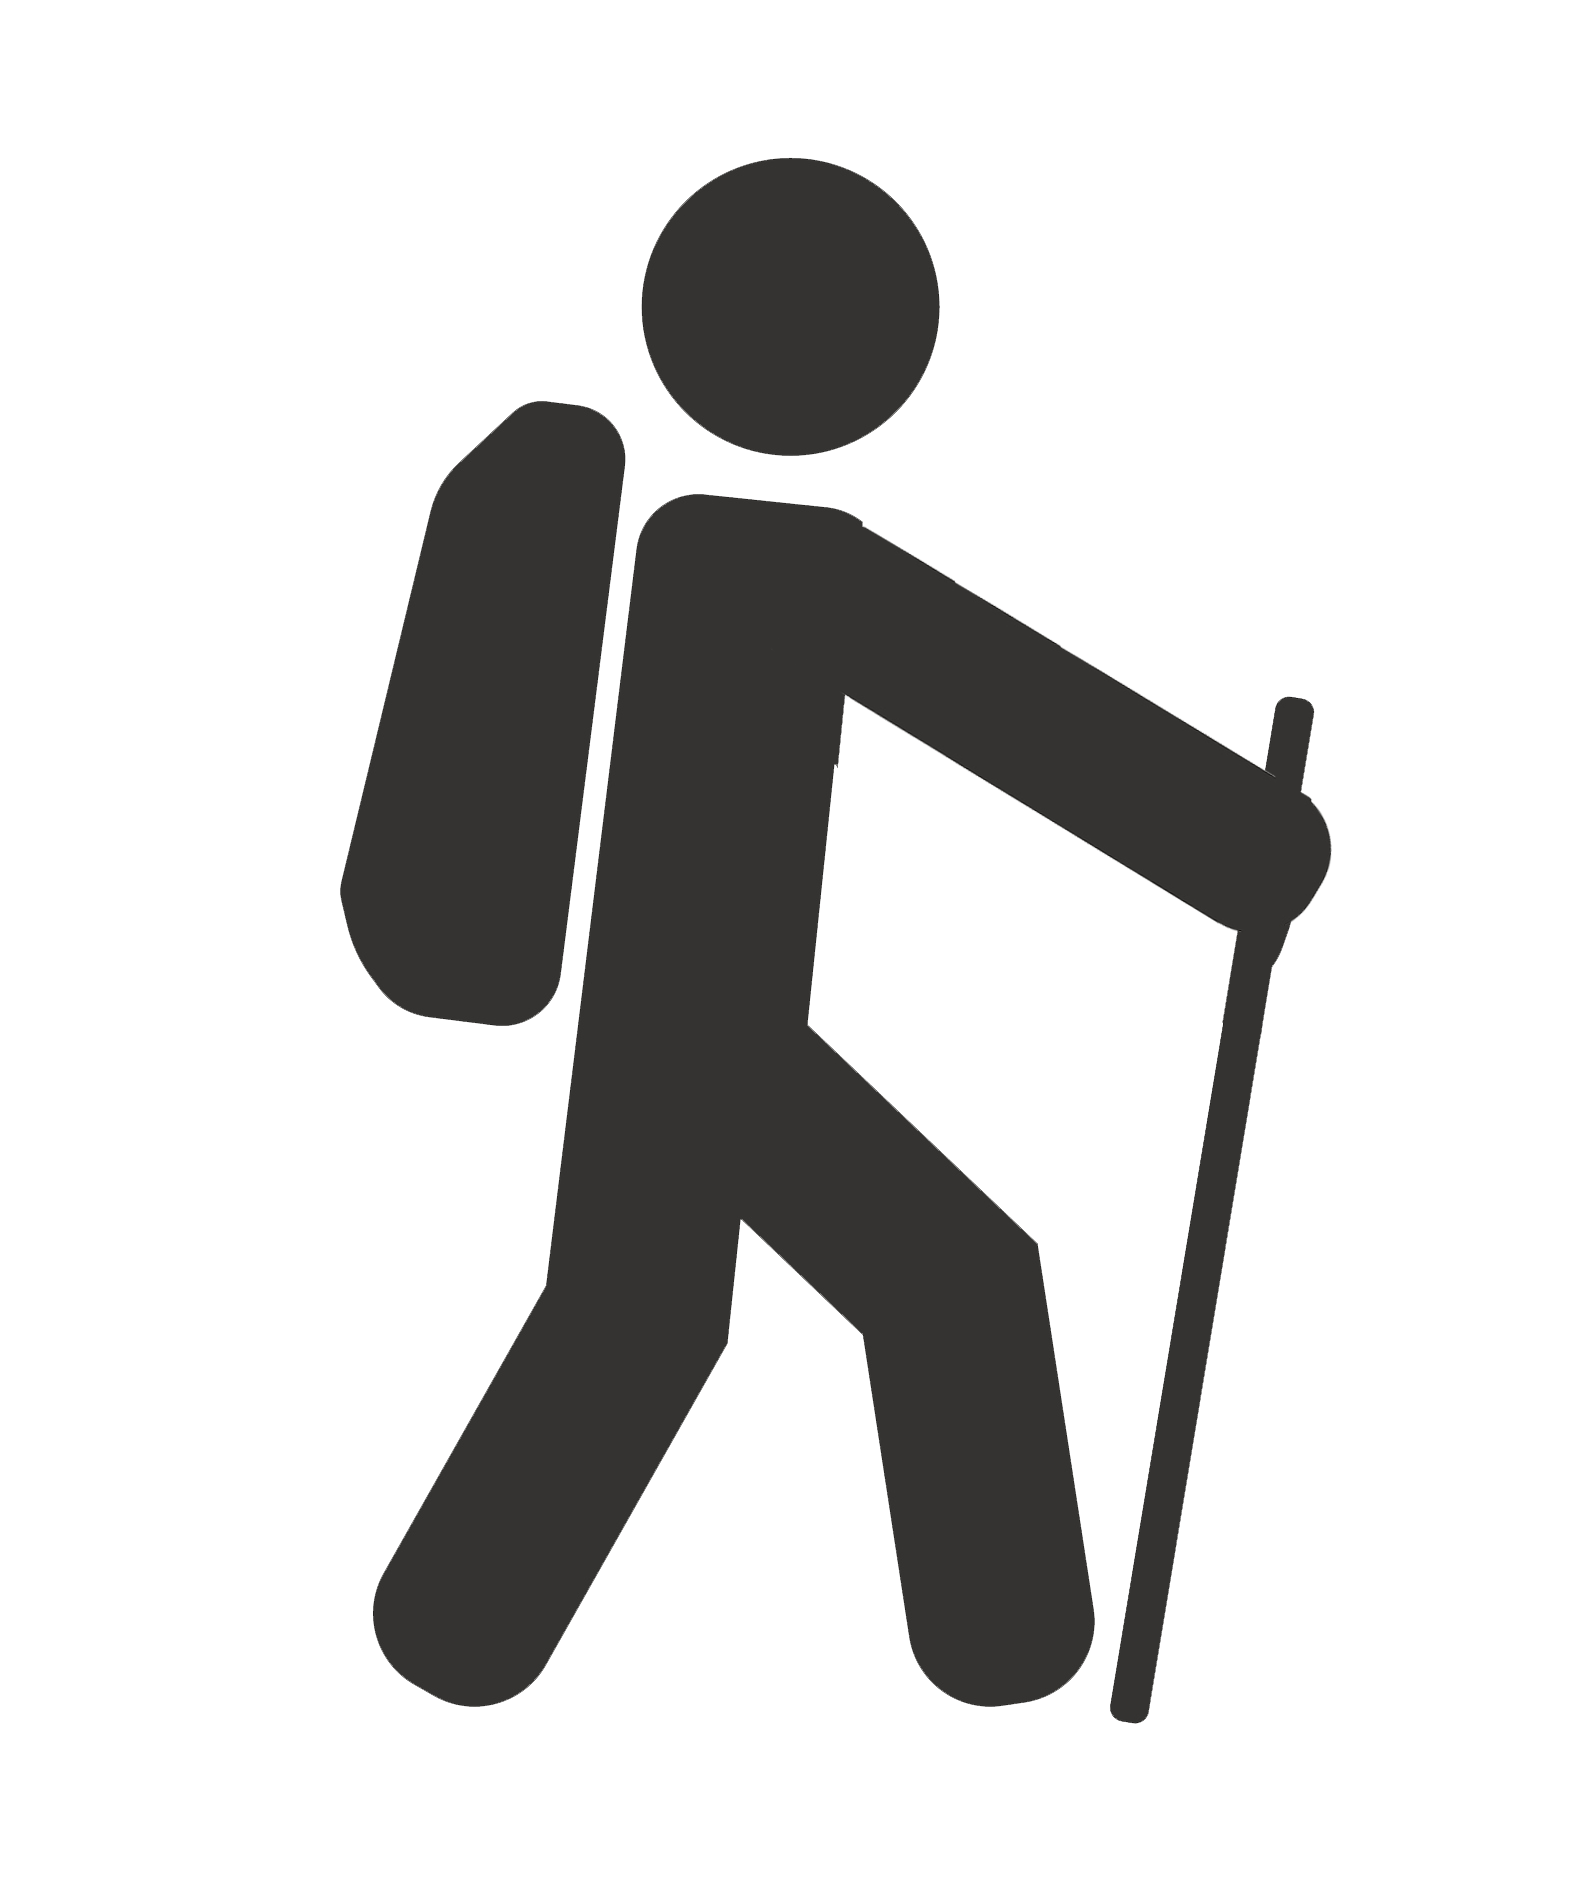 Stick figure of a hiker wearing a backpack and using a walking stick.